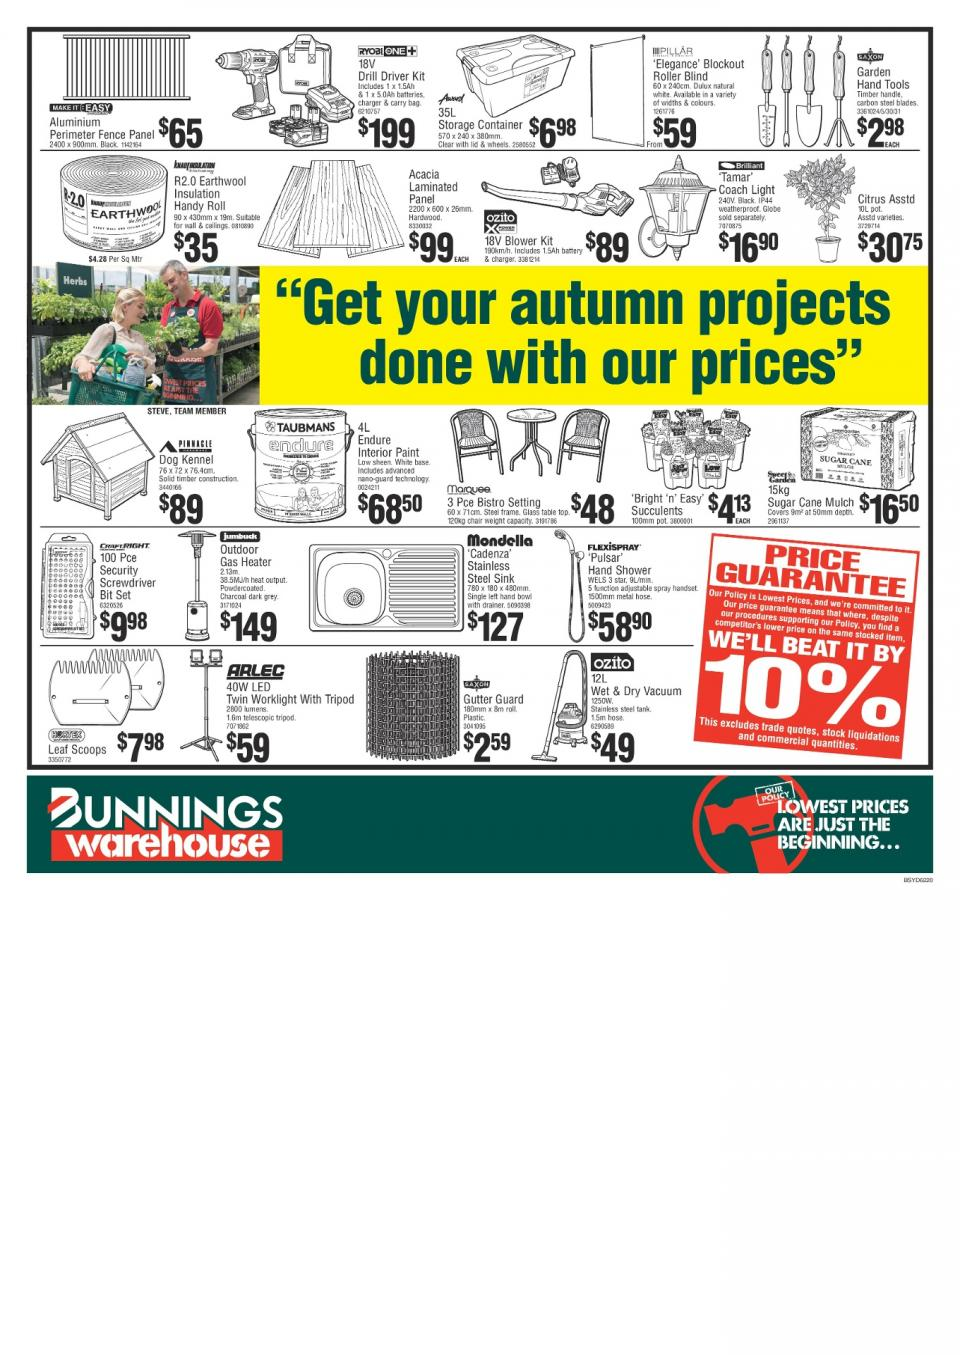 bunnings catalogue april may 2018